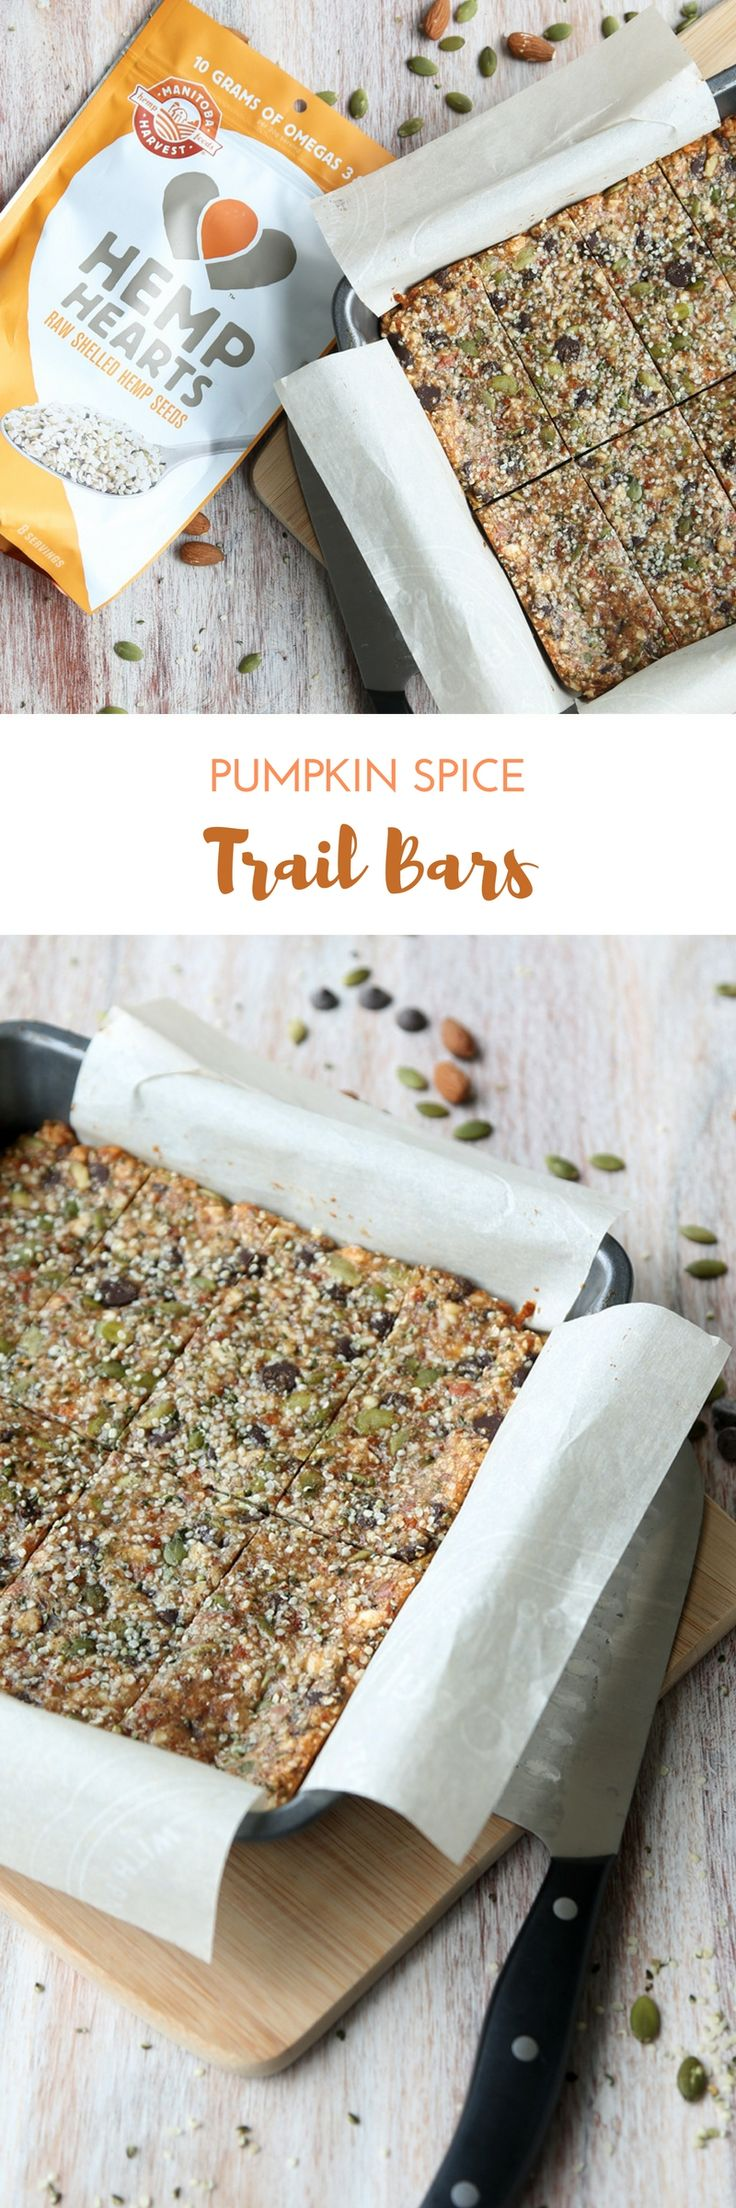 These Pumpkin Spice Trail Bars are packed with almonds, chocolate chips, Hemp Hearts, and pumpkin seeds. They make a great healthy snack that will fuel you through any fall hike!